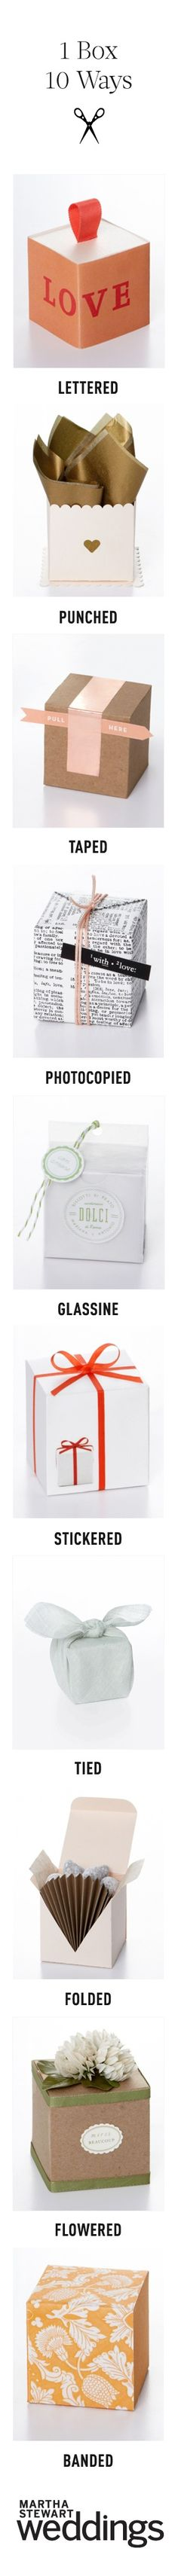 Find out how to transform one simple favor box into 10 awesome packaging options